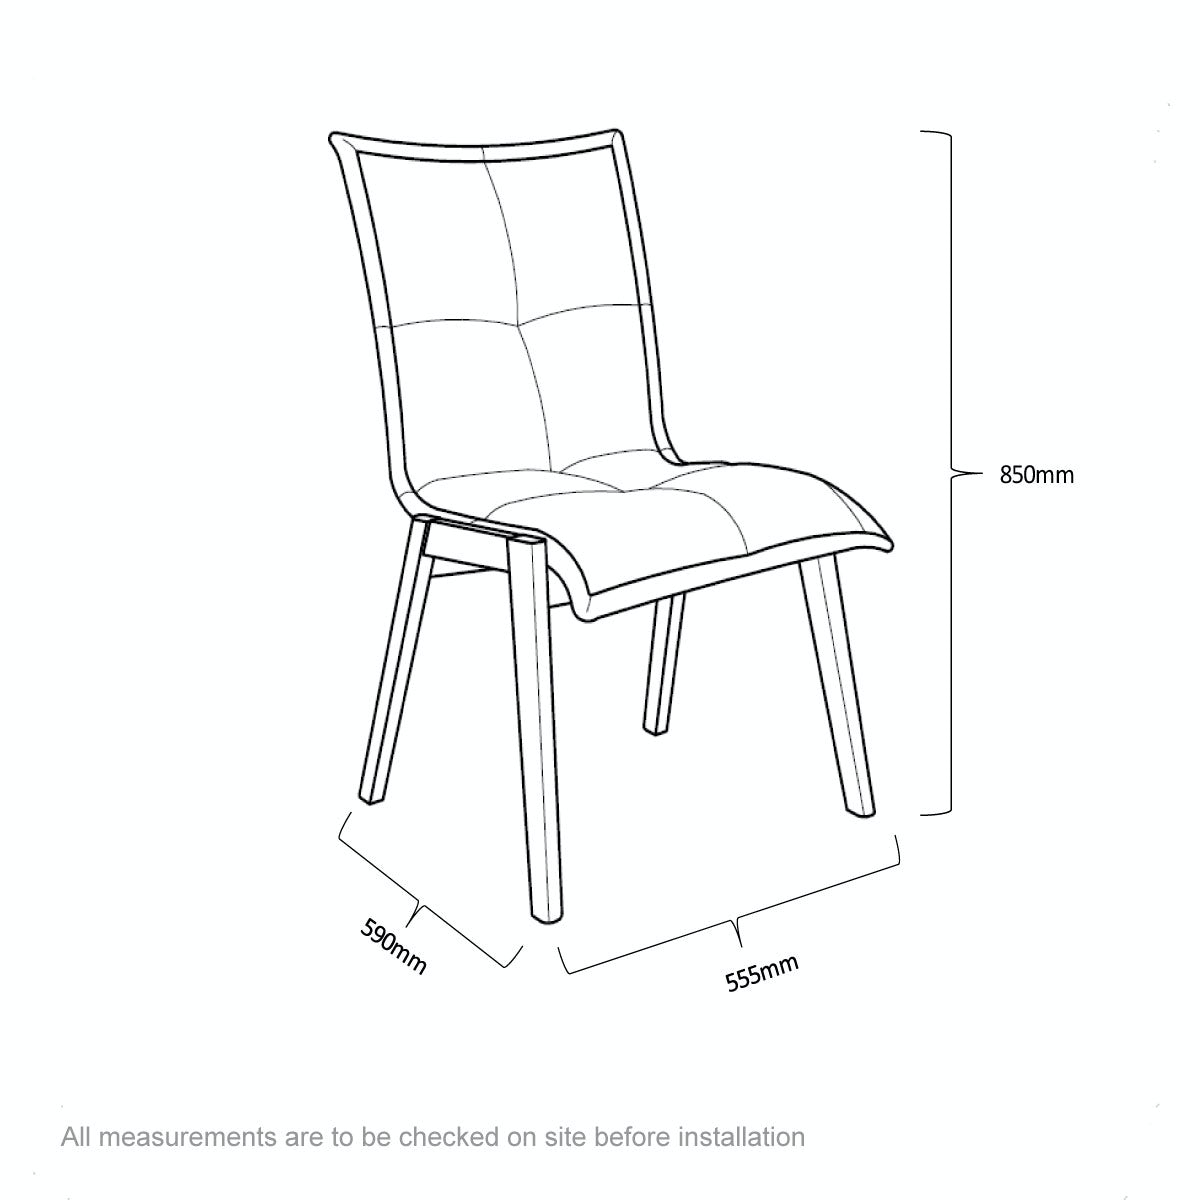 Dimensions for Hadley oak and light cyan pair of dining chairs